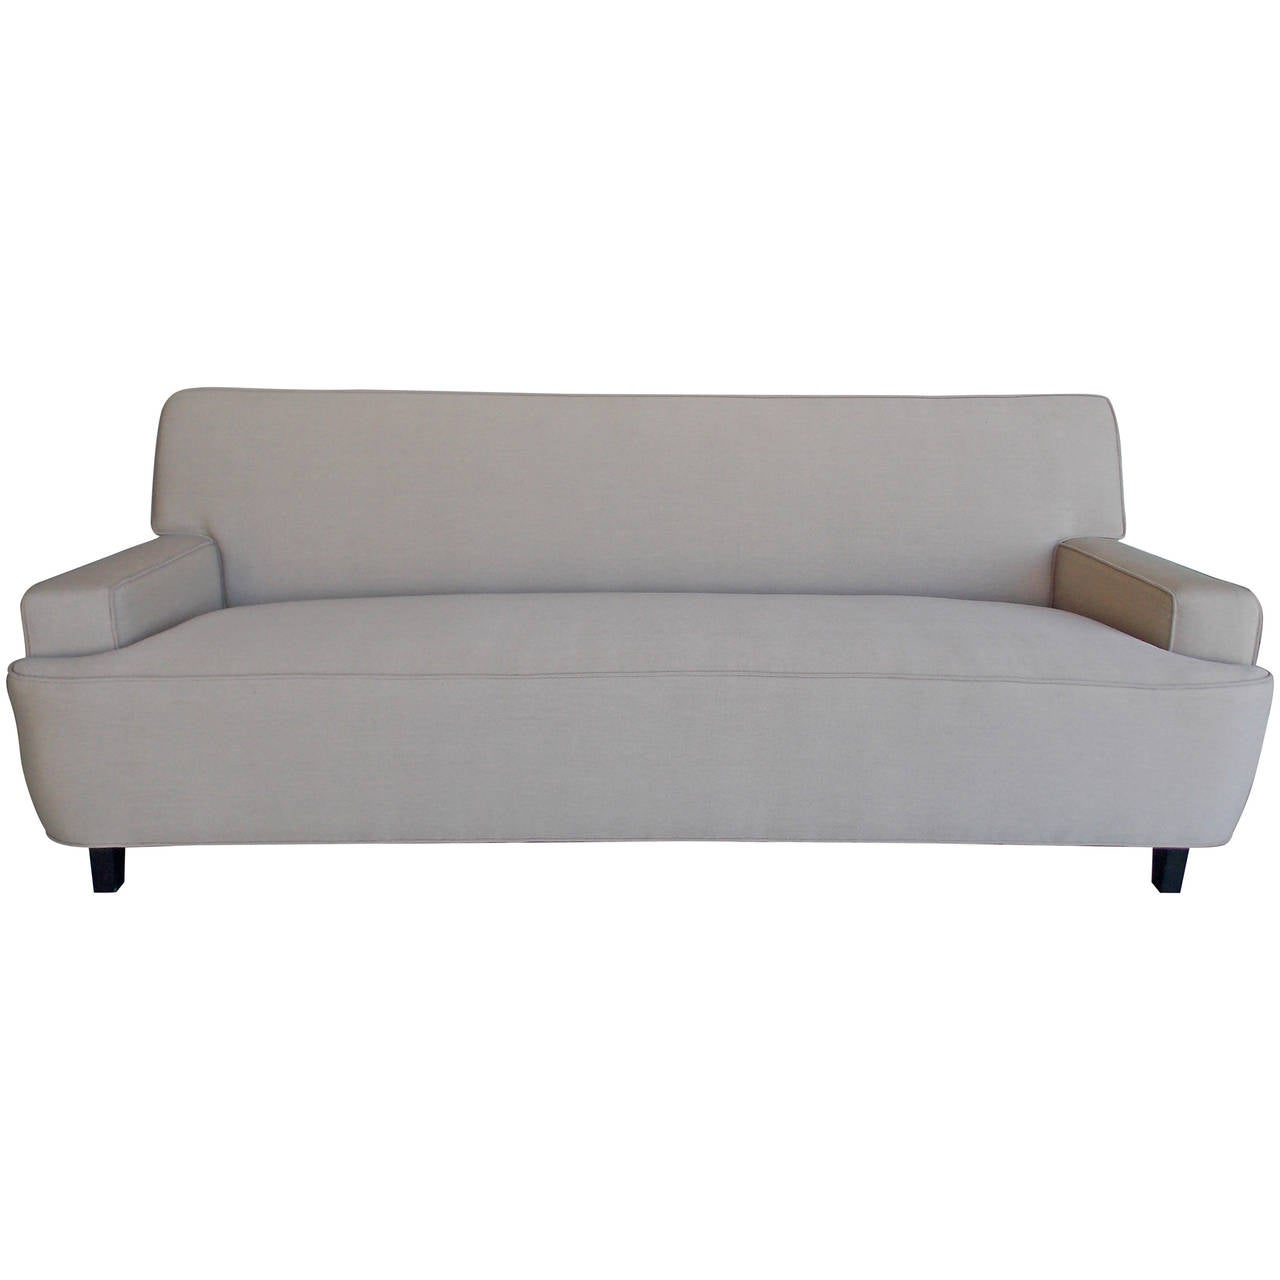 George Nelson Modernist Sofa for Herman Miller